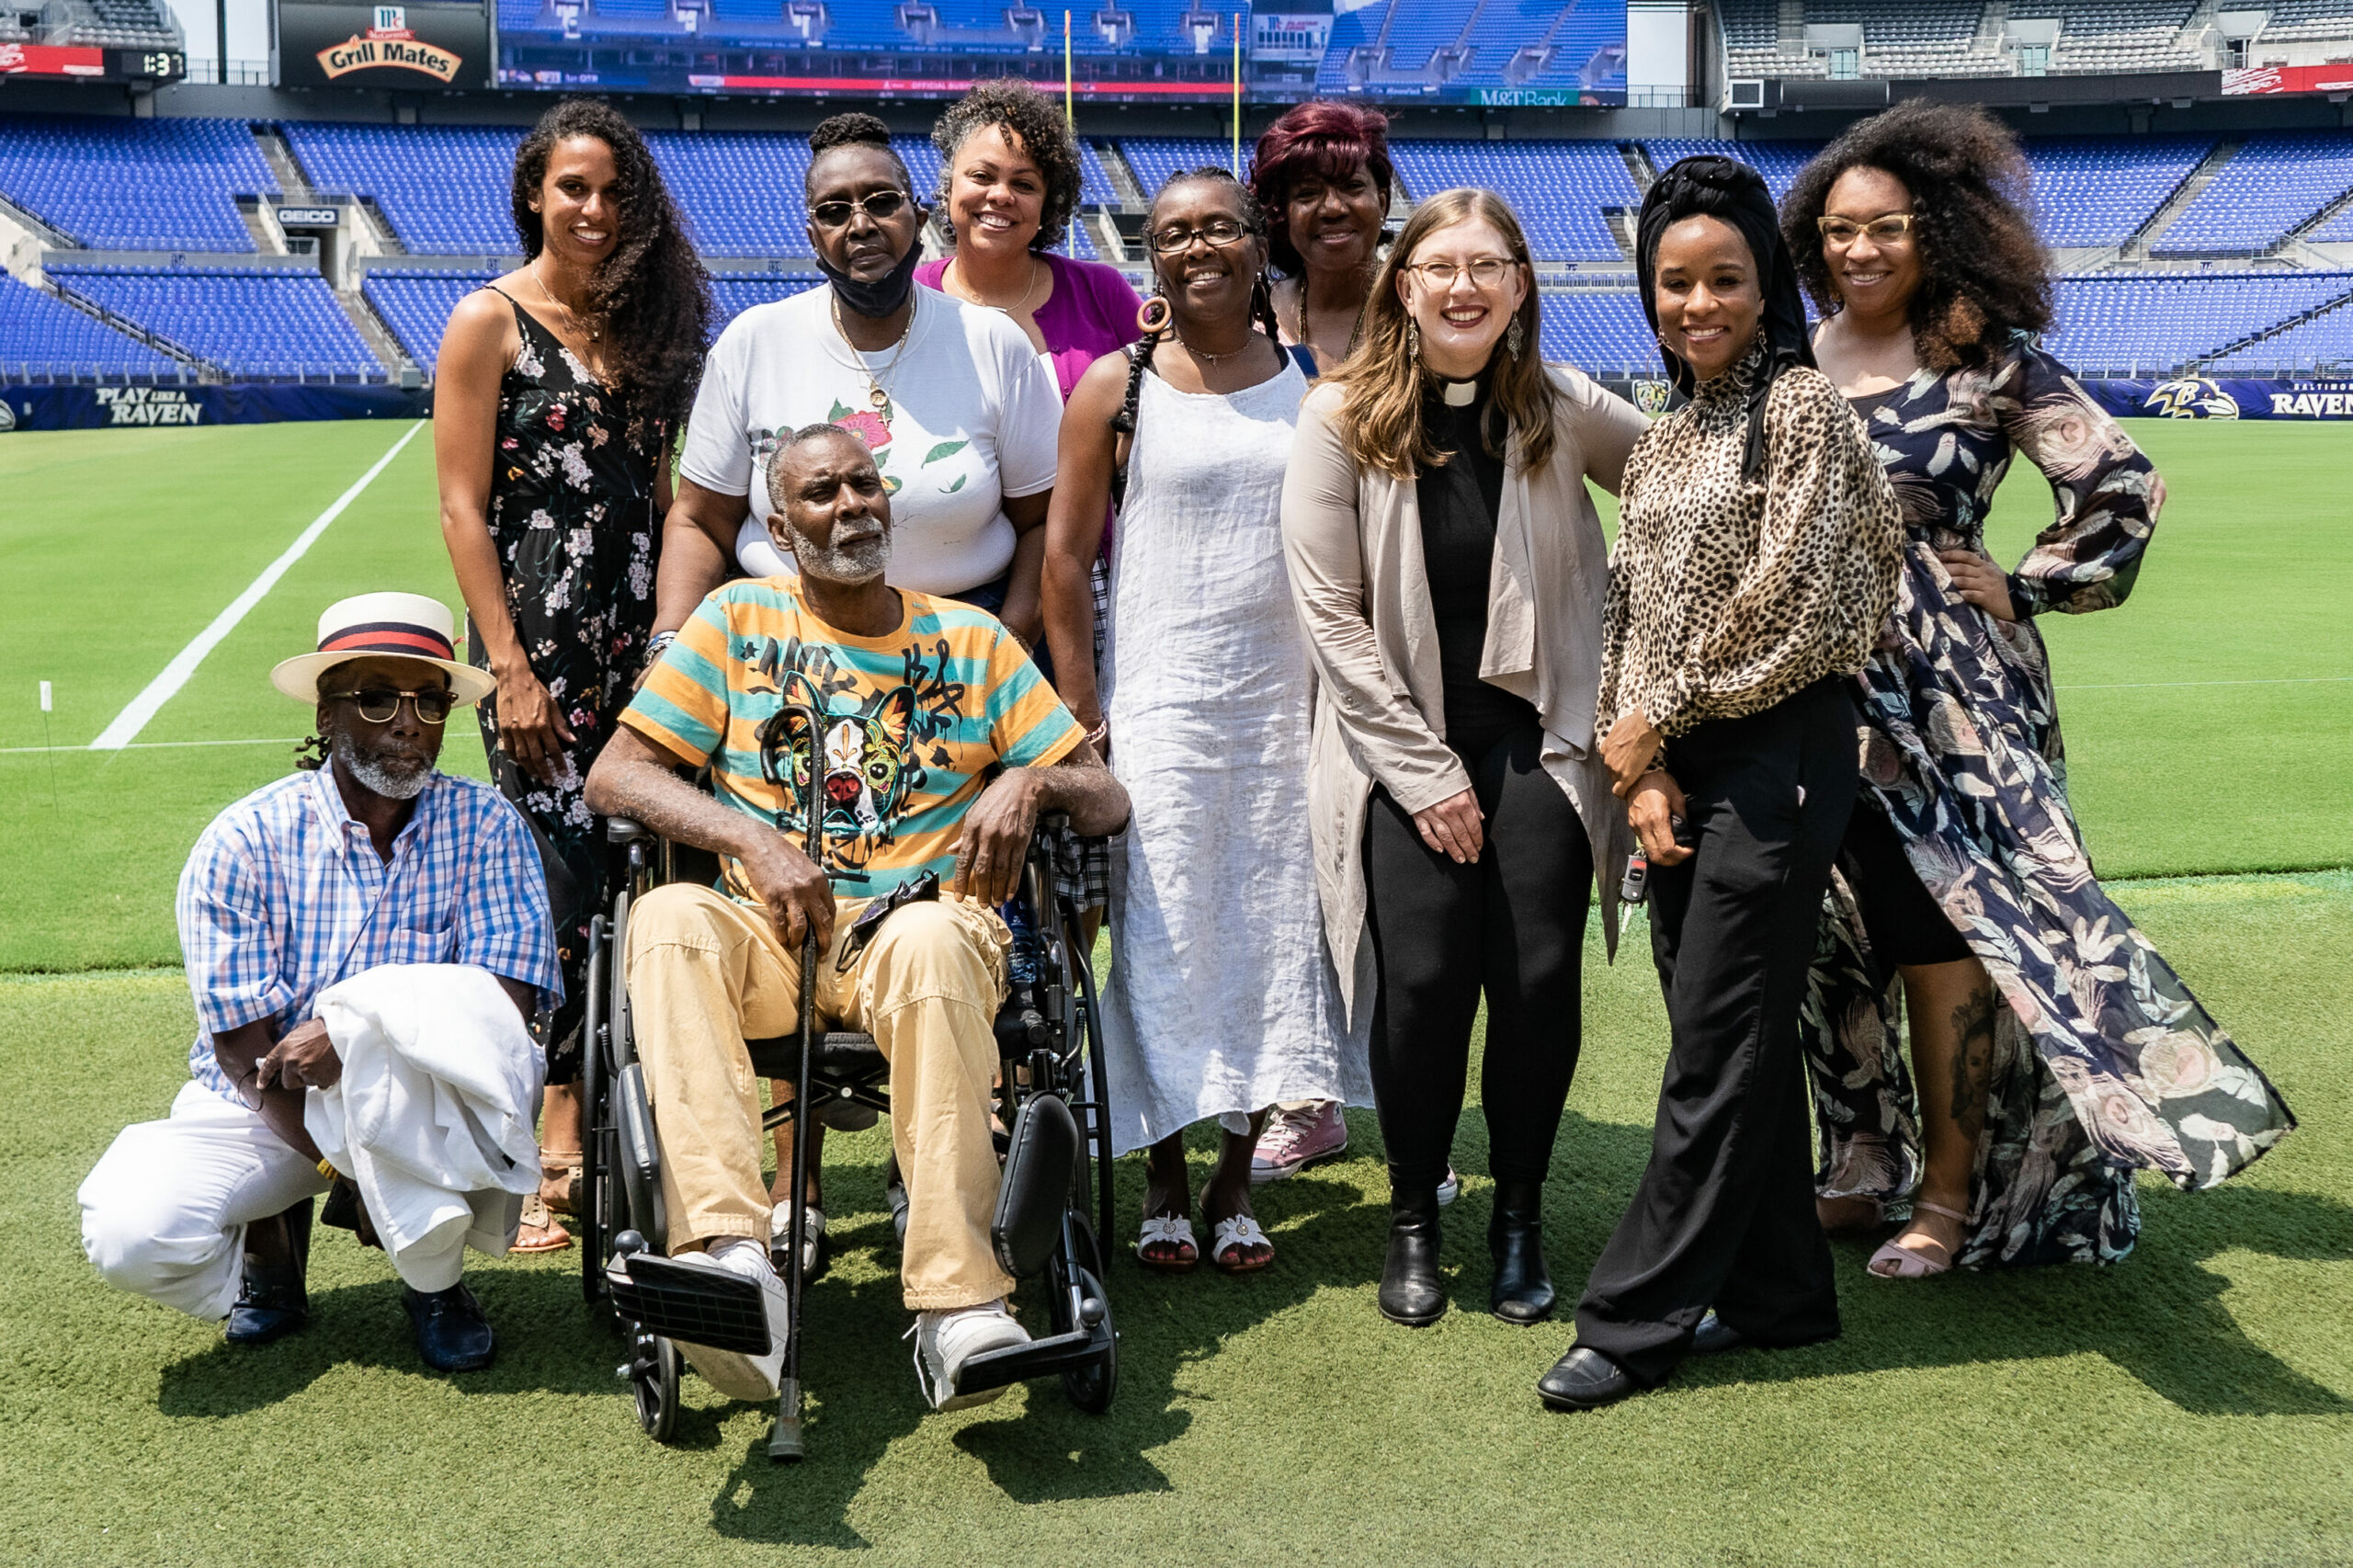 Awardees standing on M&T Bank Field